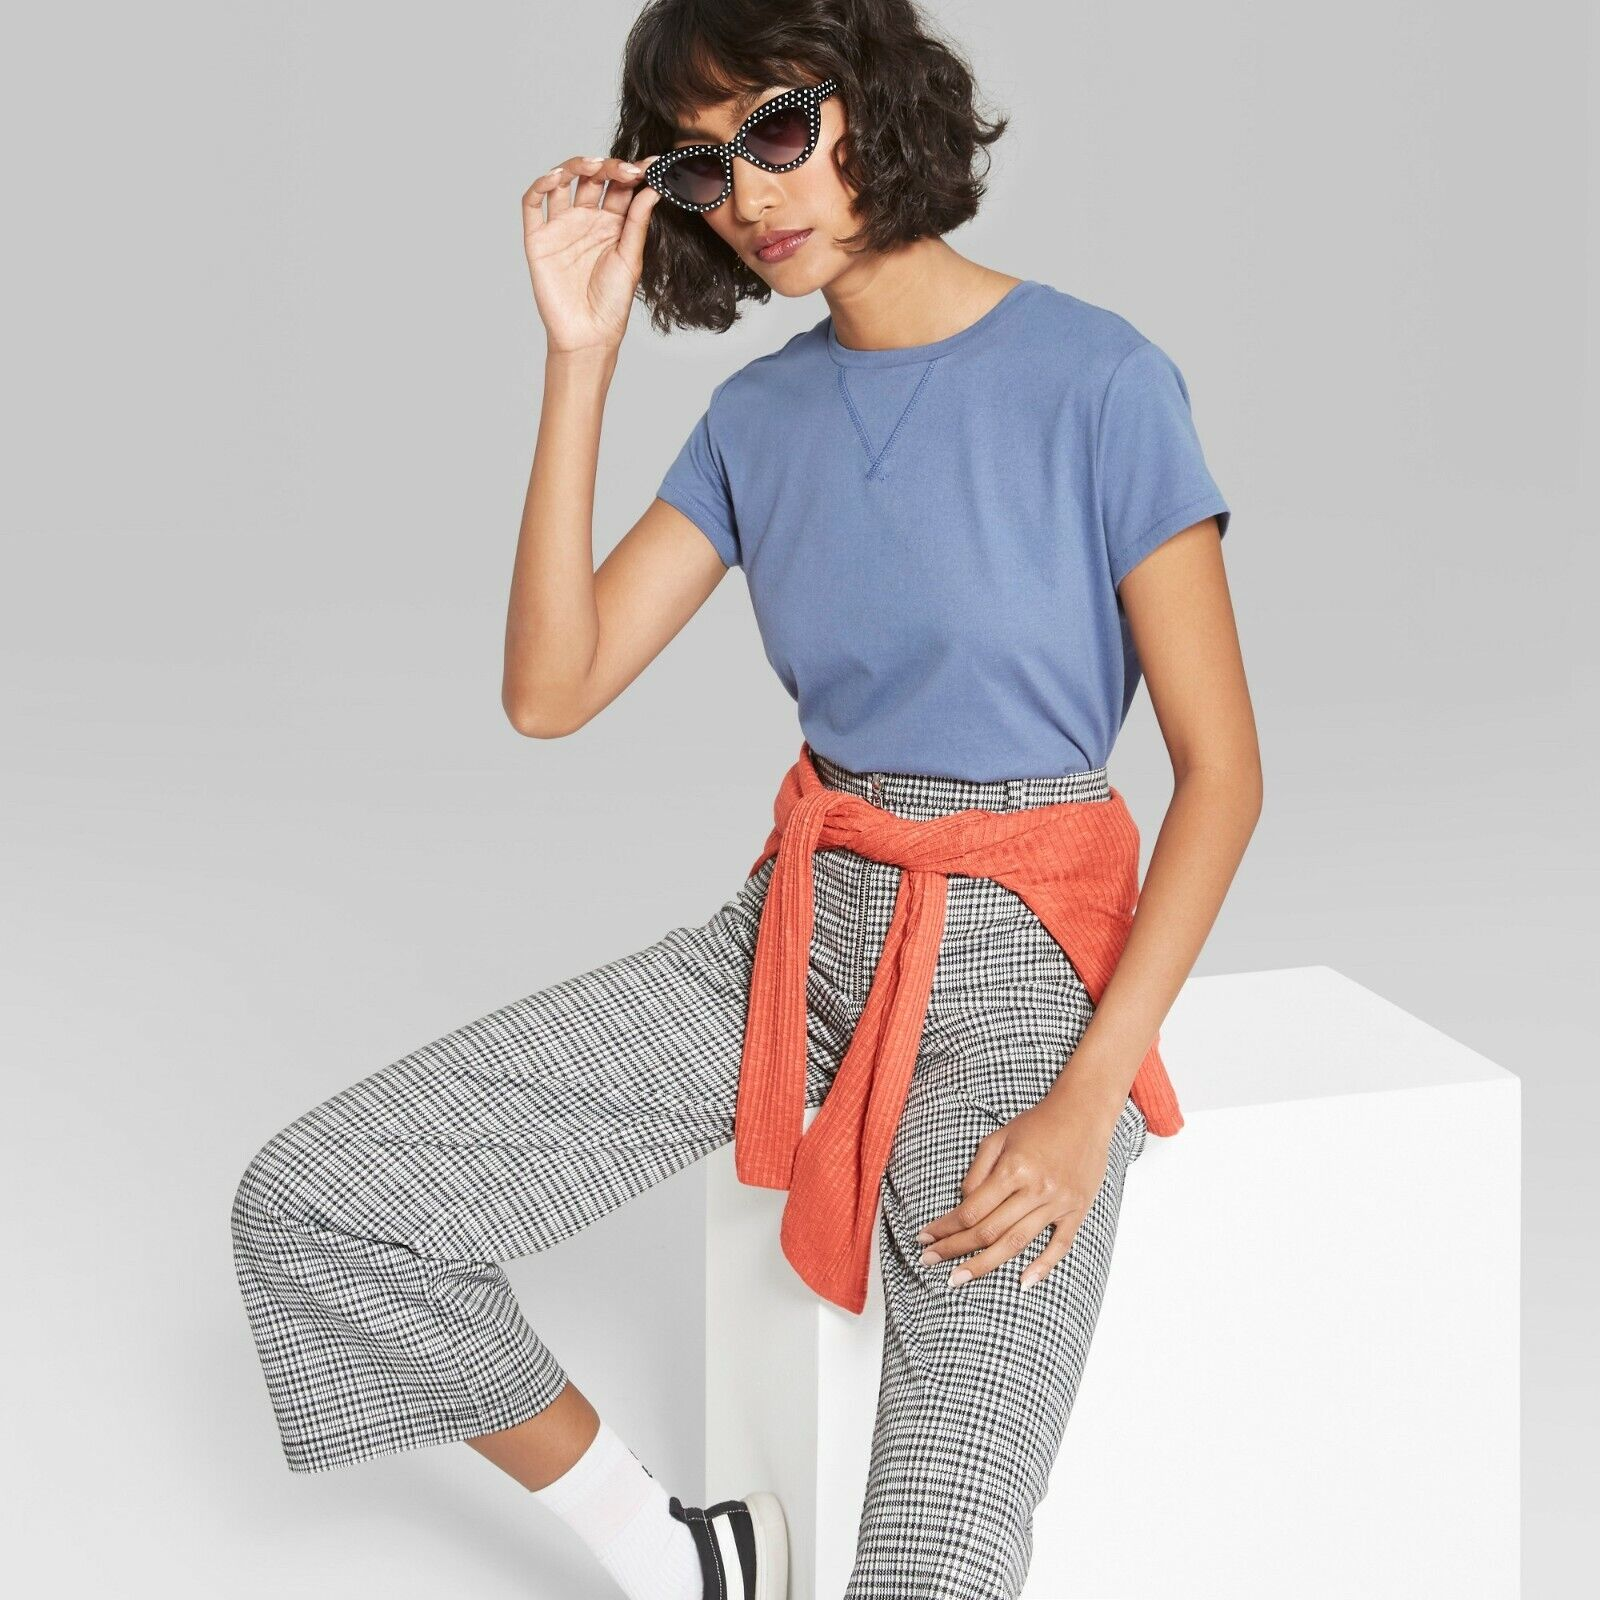 Women's Short Sleeve Crew Neck Cropped T-Shirt Boxy – Wild Fable Blue Xxl Clothing, Shoes & Accessories